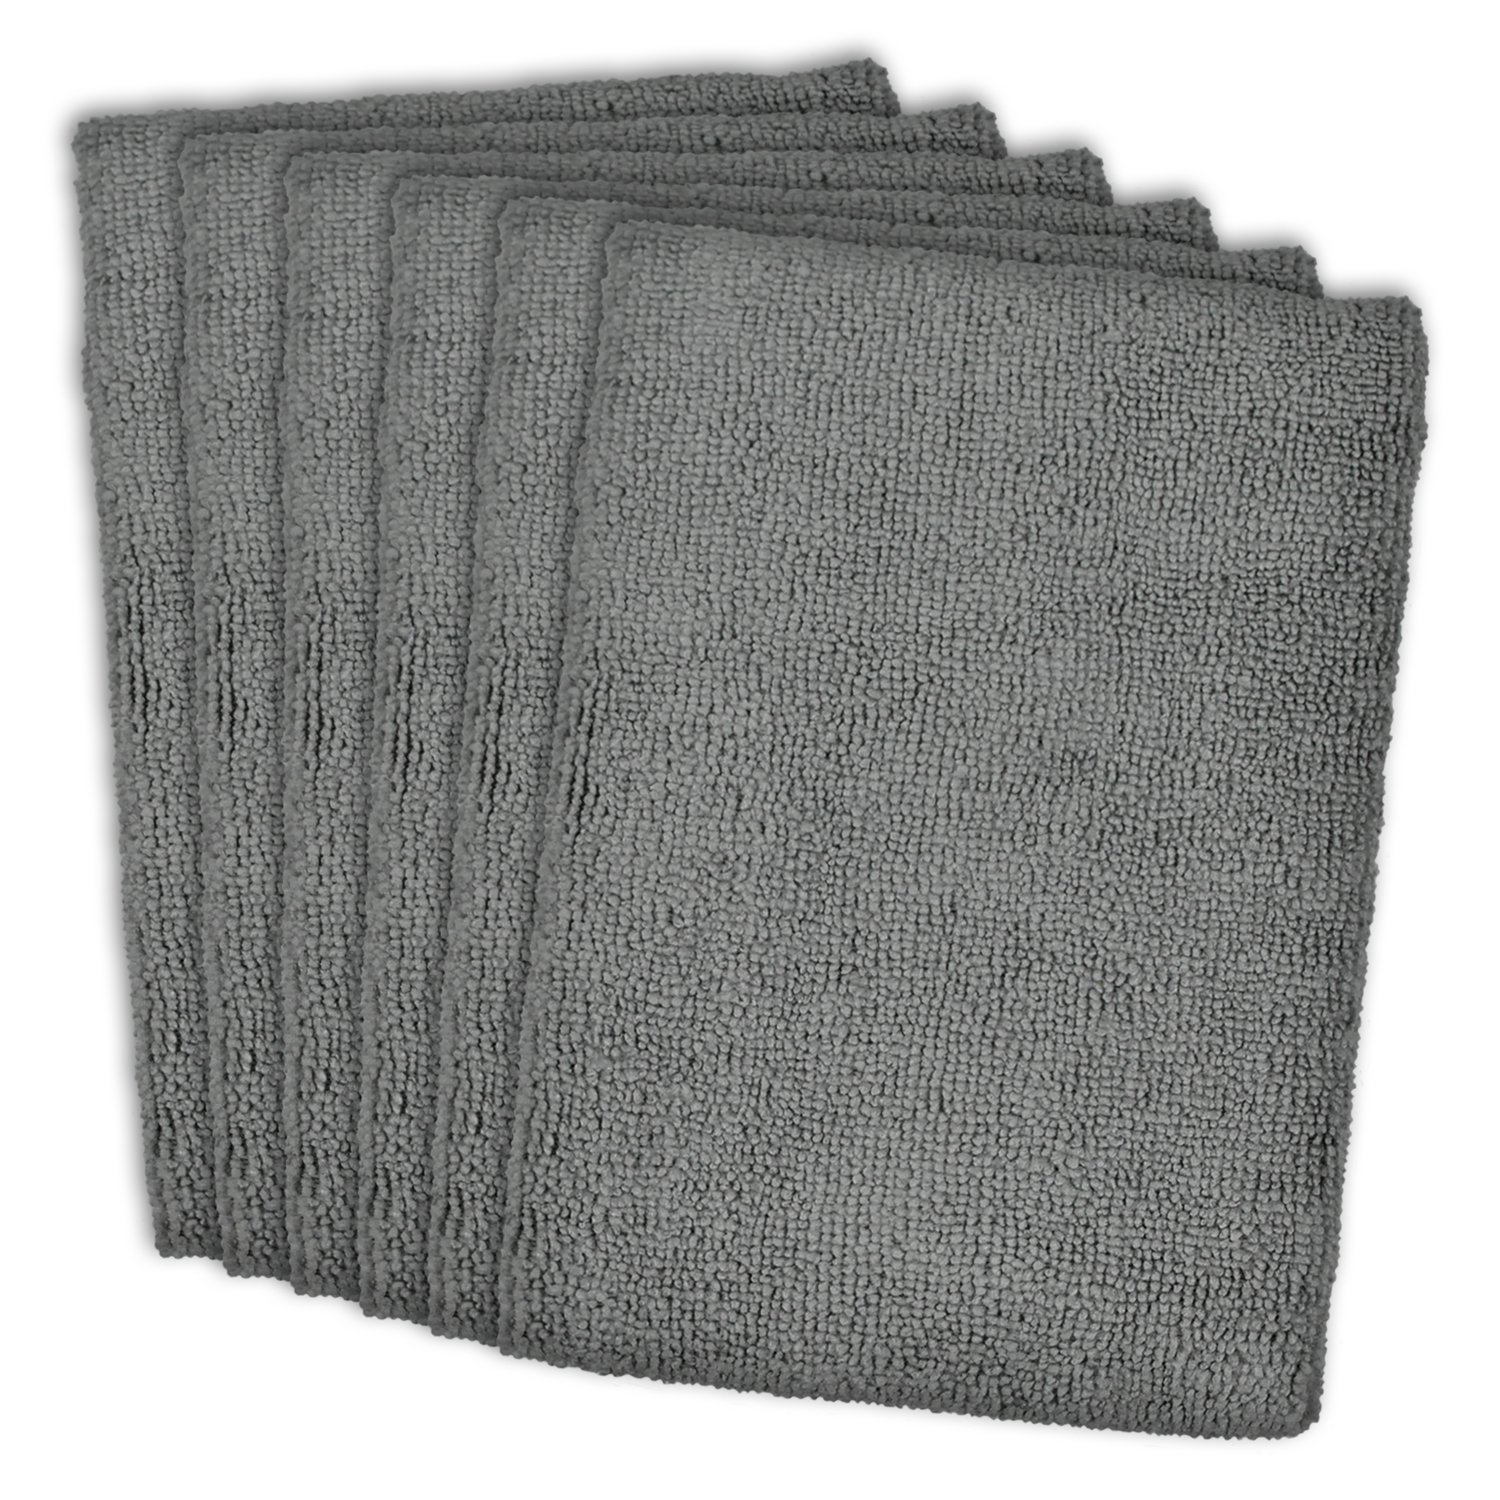 DII Millennium Cleaning Absorbent Microfiber Image 1